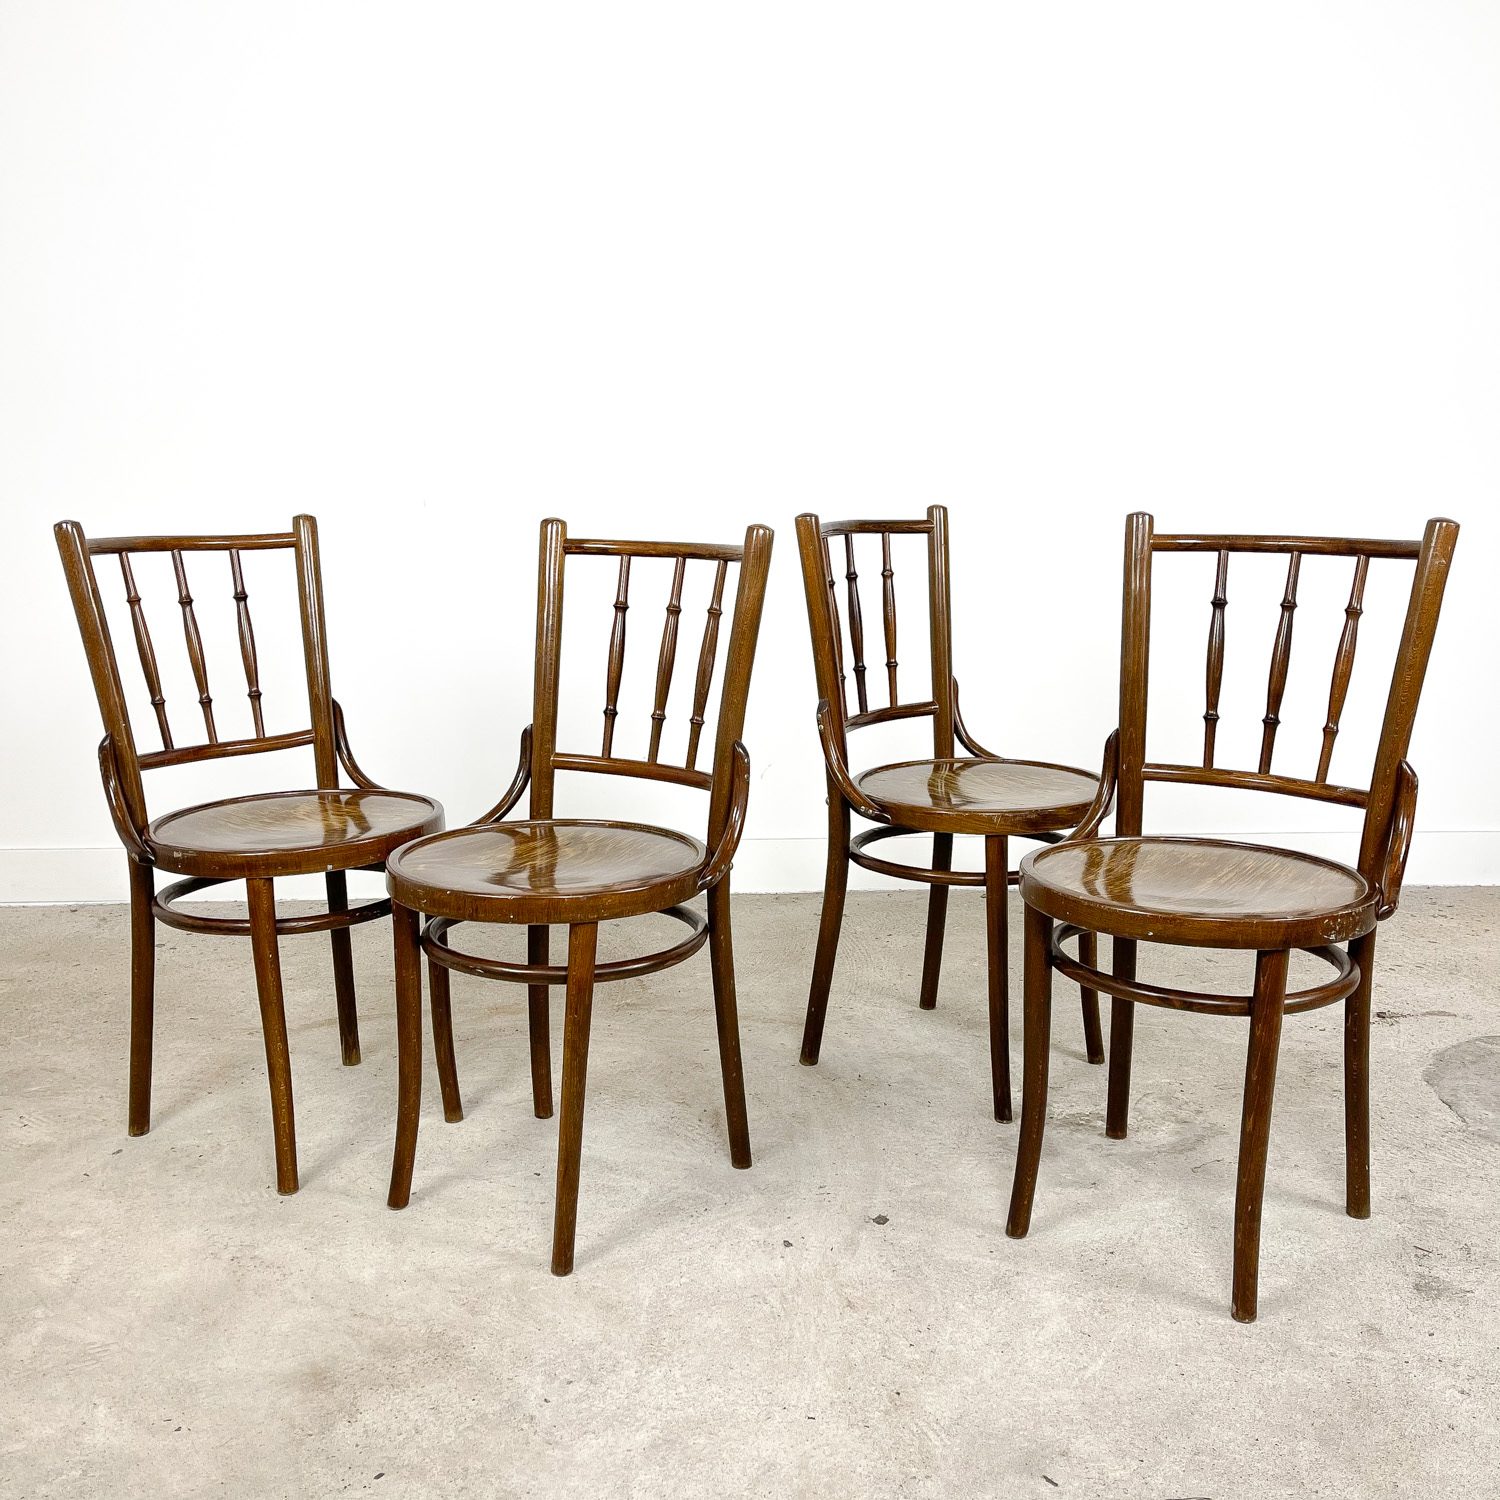 Set of four vintage wooden cafe bistro chairs